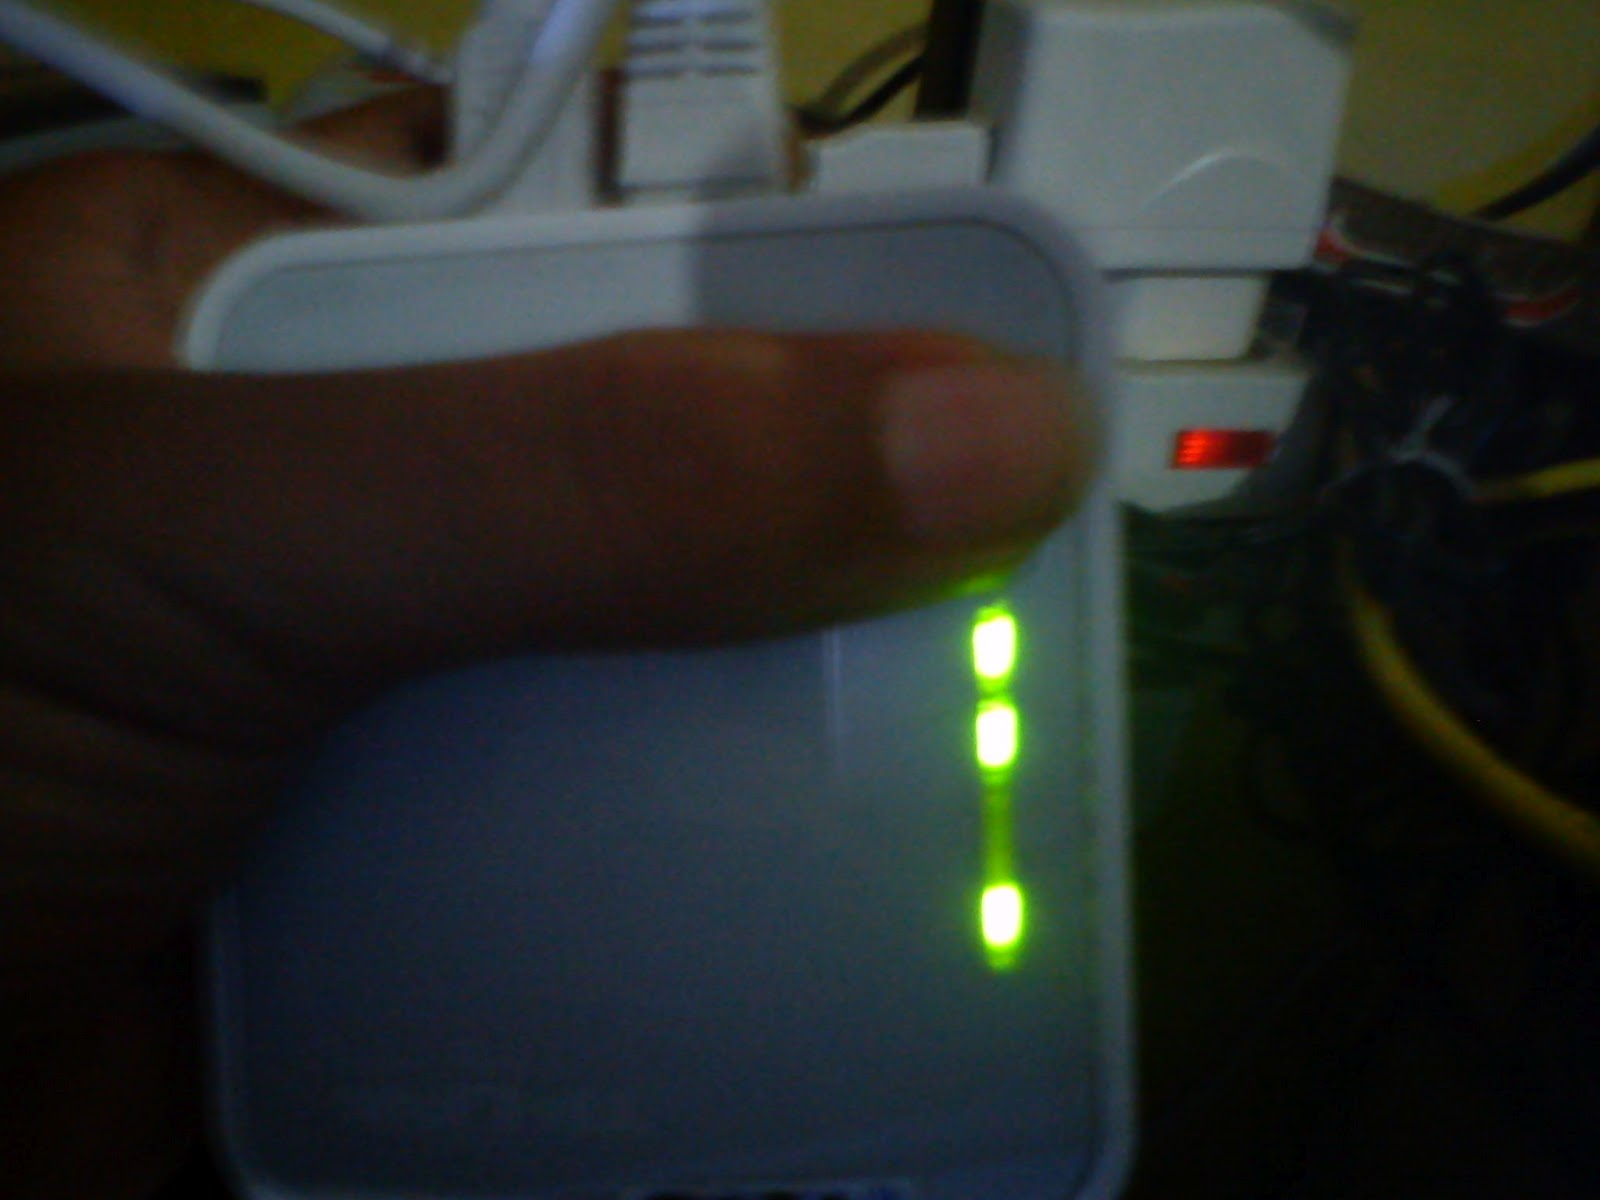 tp-link mr3020 | wireless n router | openwrt | firmware